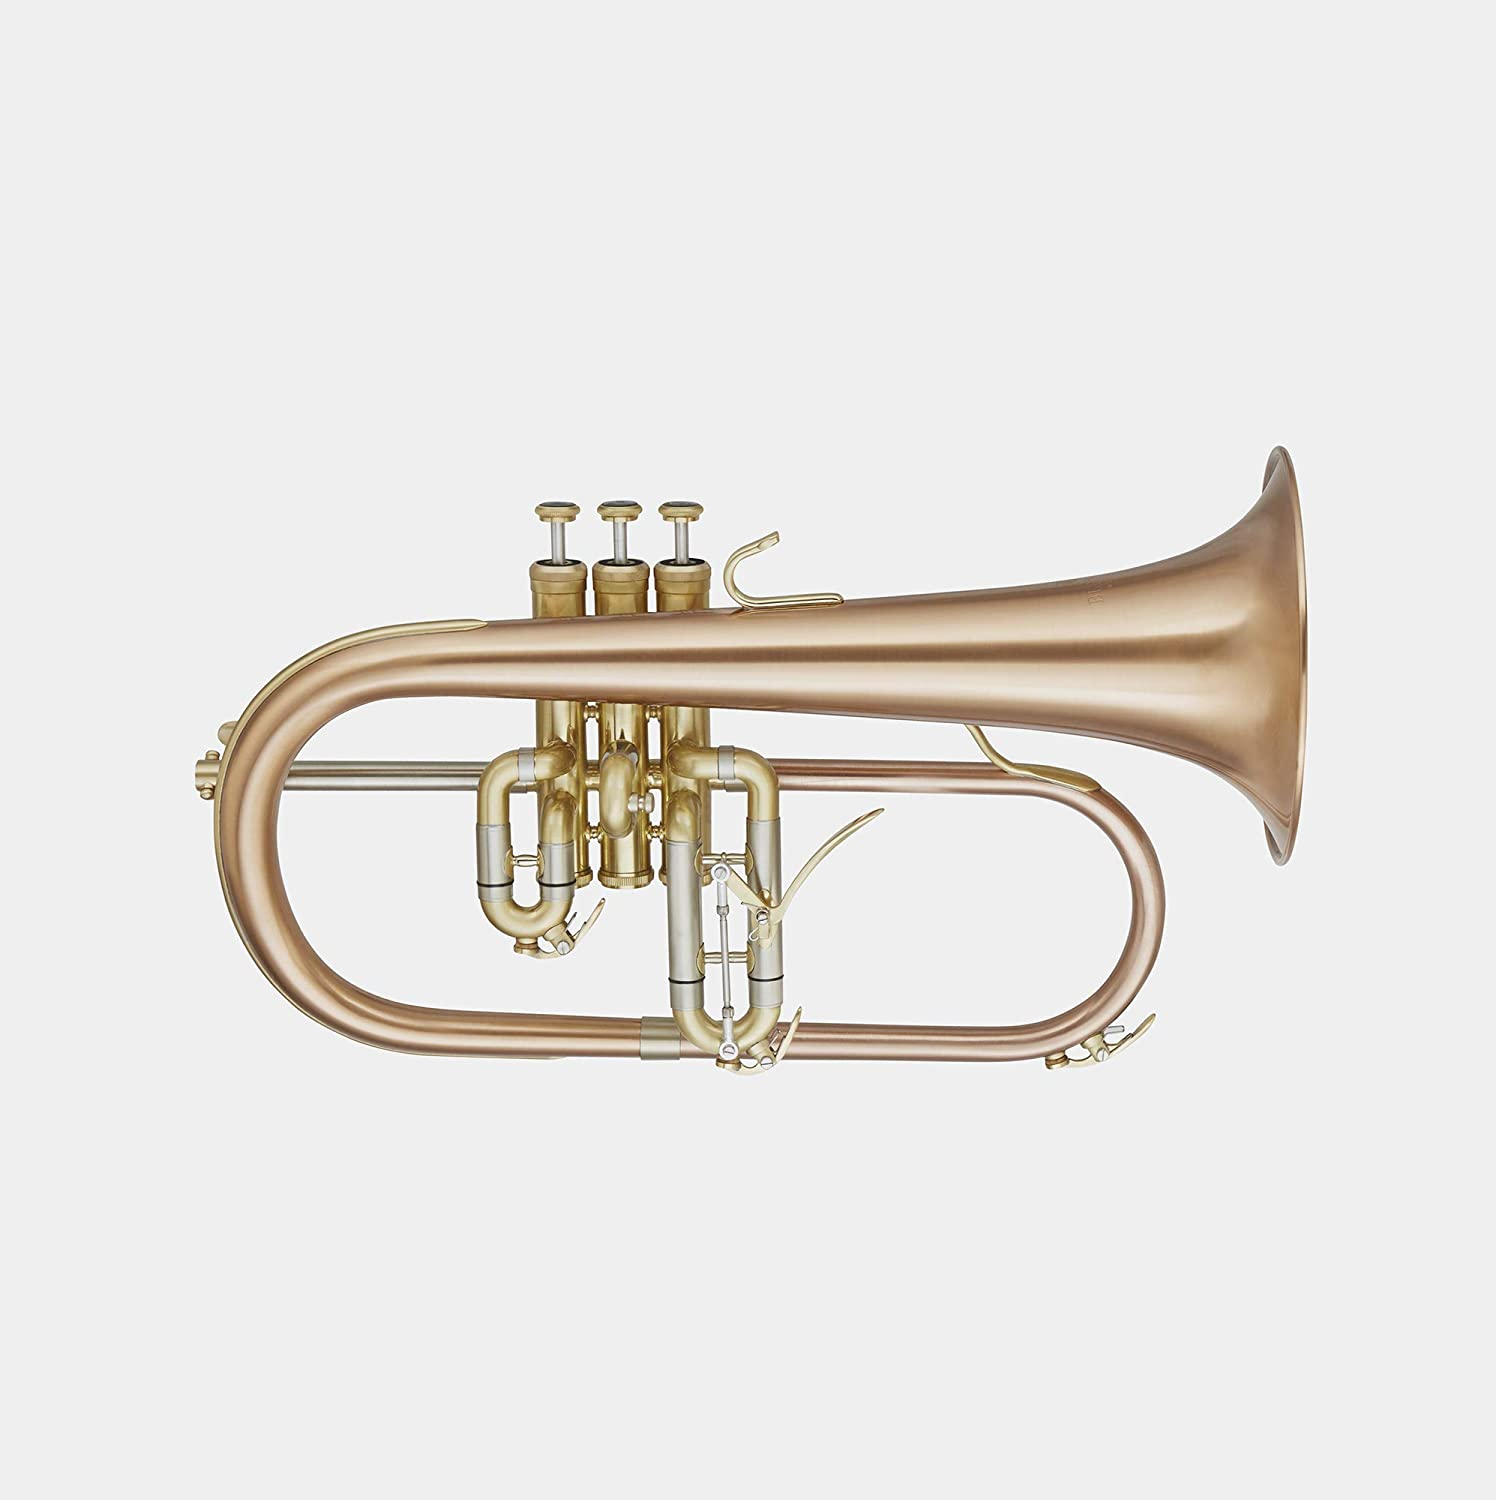 Blessing BFH-1541RT Professional Flugelhorn, Lacquered Brass with 1-Piece Red Copper Bell: Musical Instruments